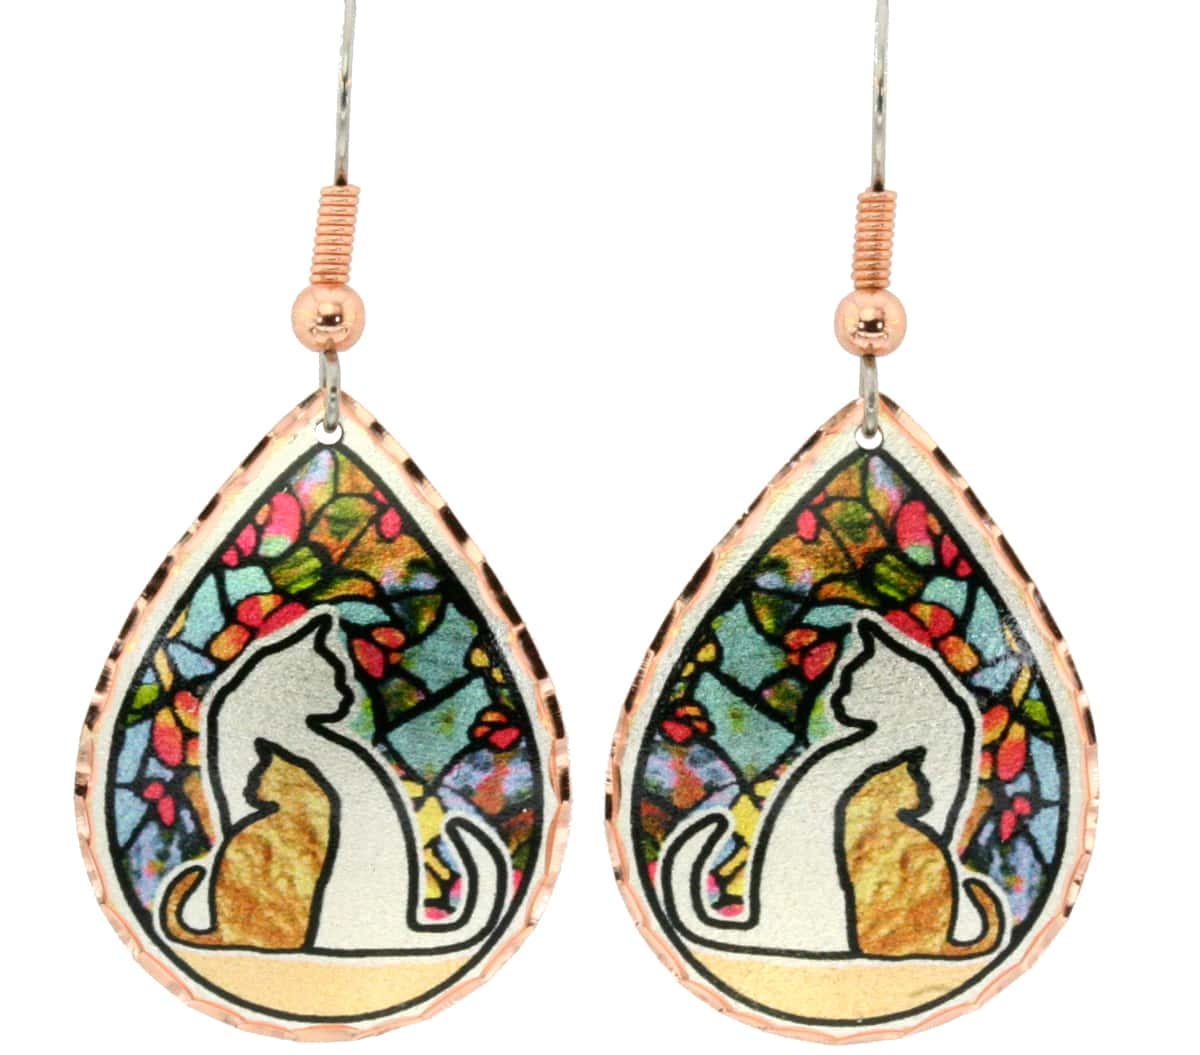 Teardrop cat earrings handmade in cat silhouettes with colorful stained glass background design